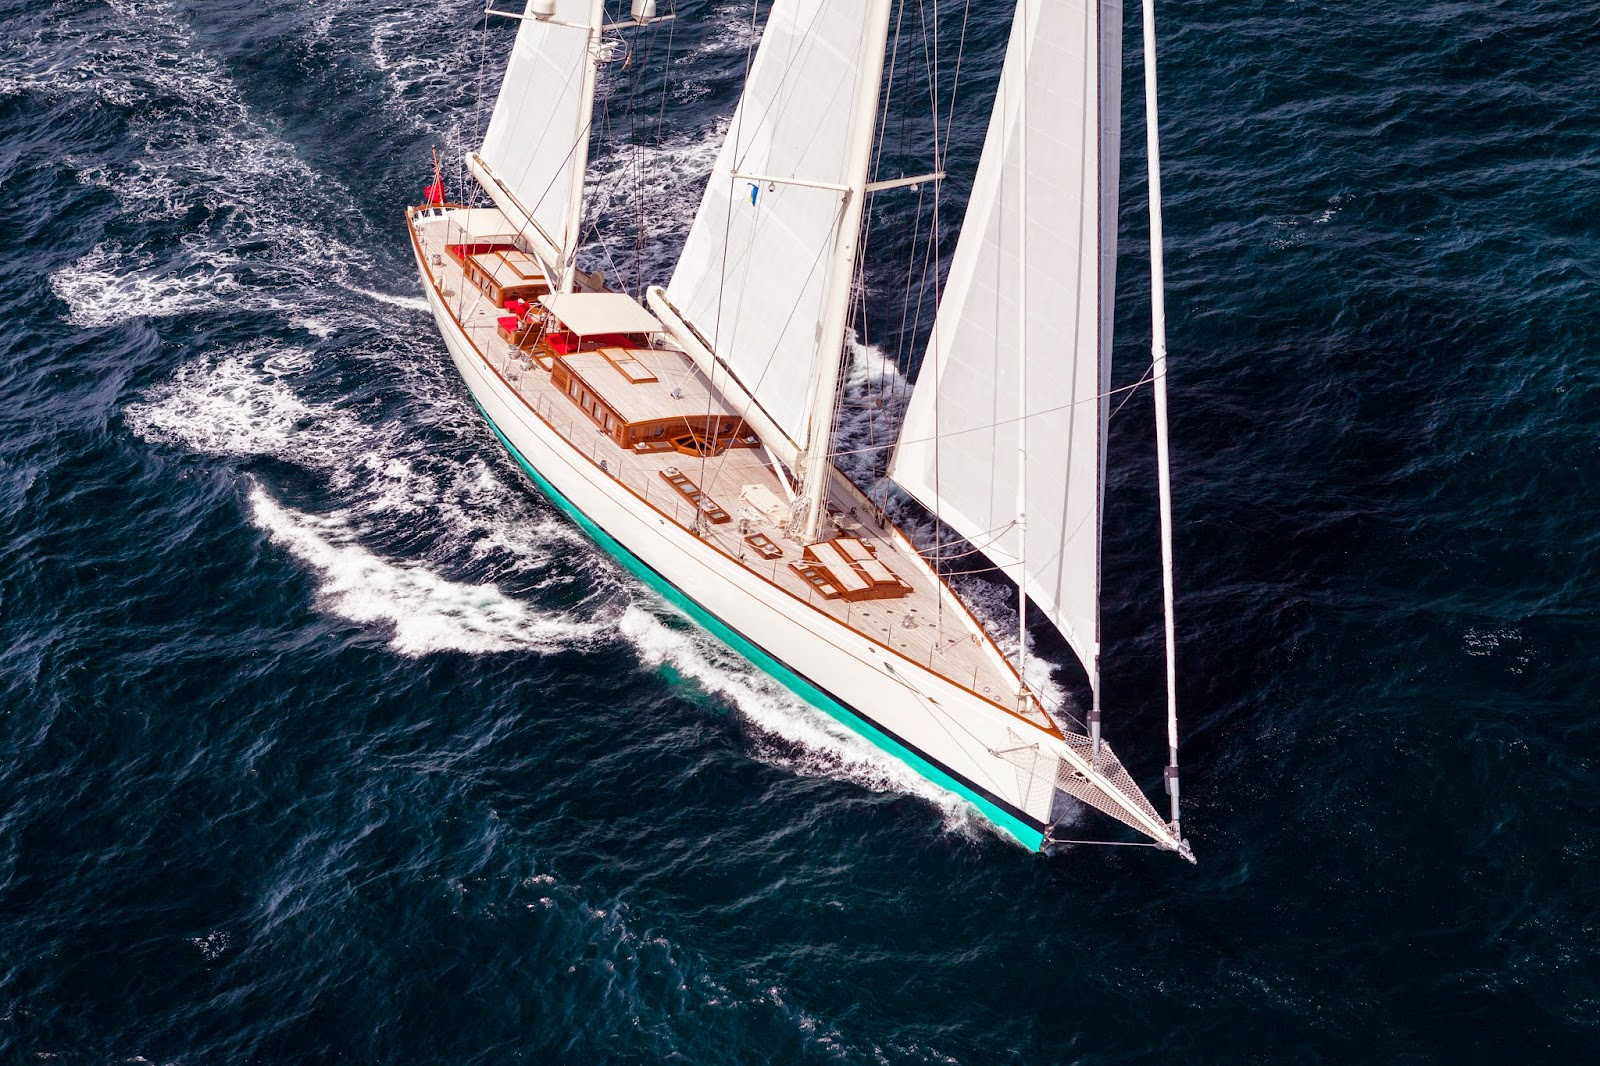 Kamaxitha, 55 meter Spirit of Tradition ketch designed by Dykstra Naval Architects, photo by Cory Silken